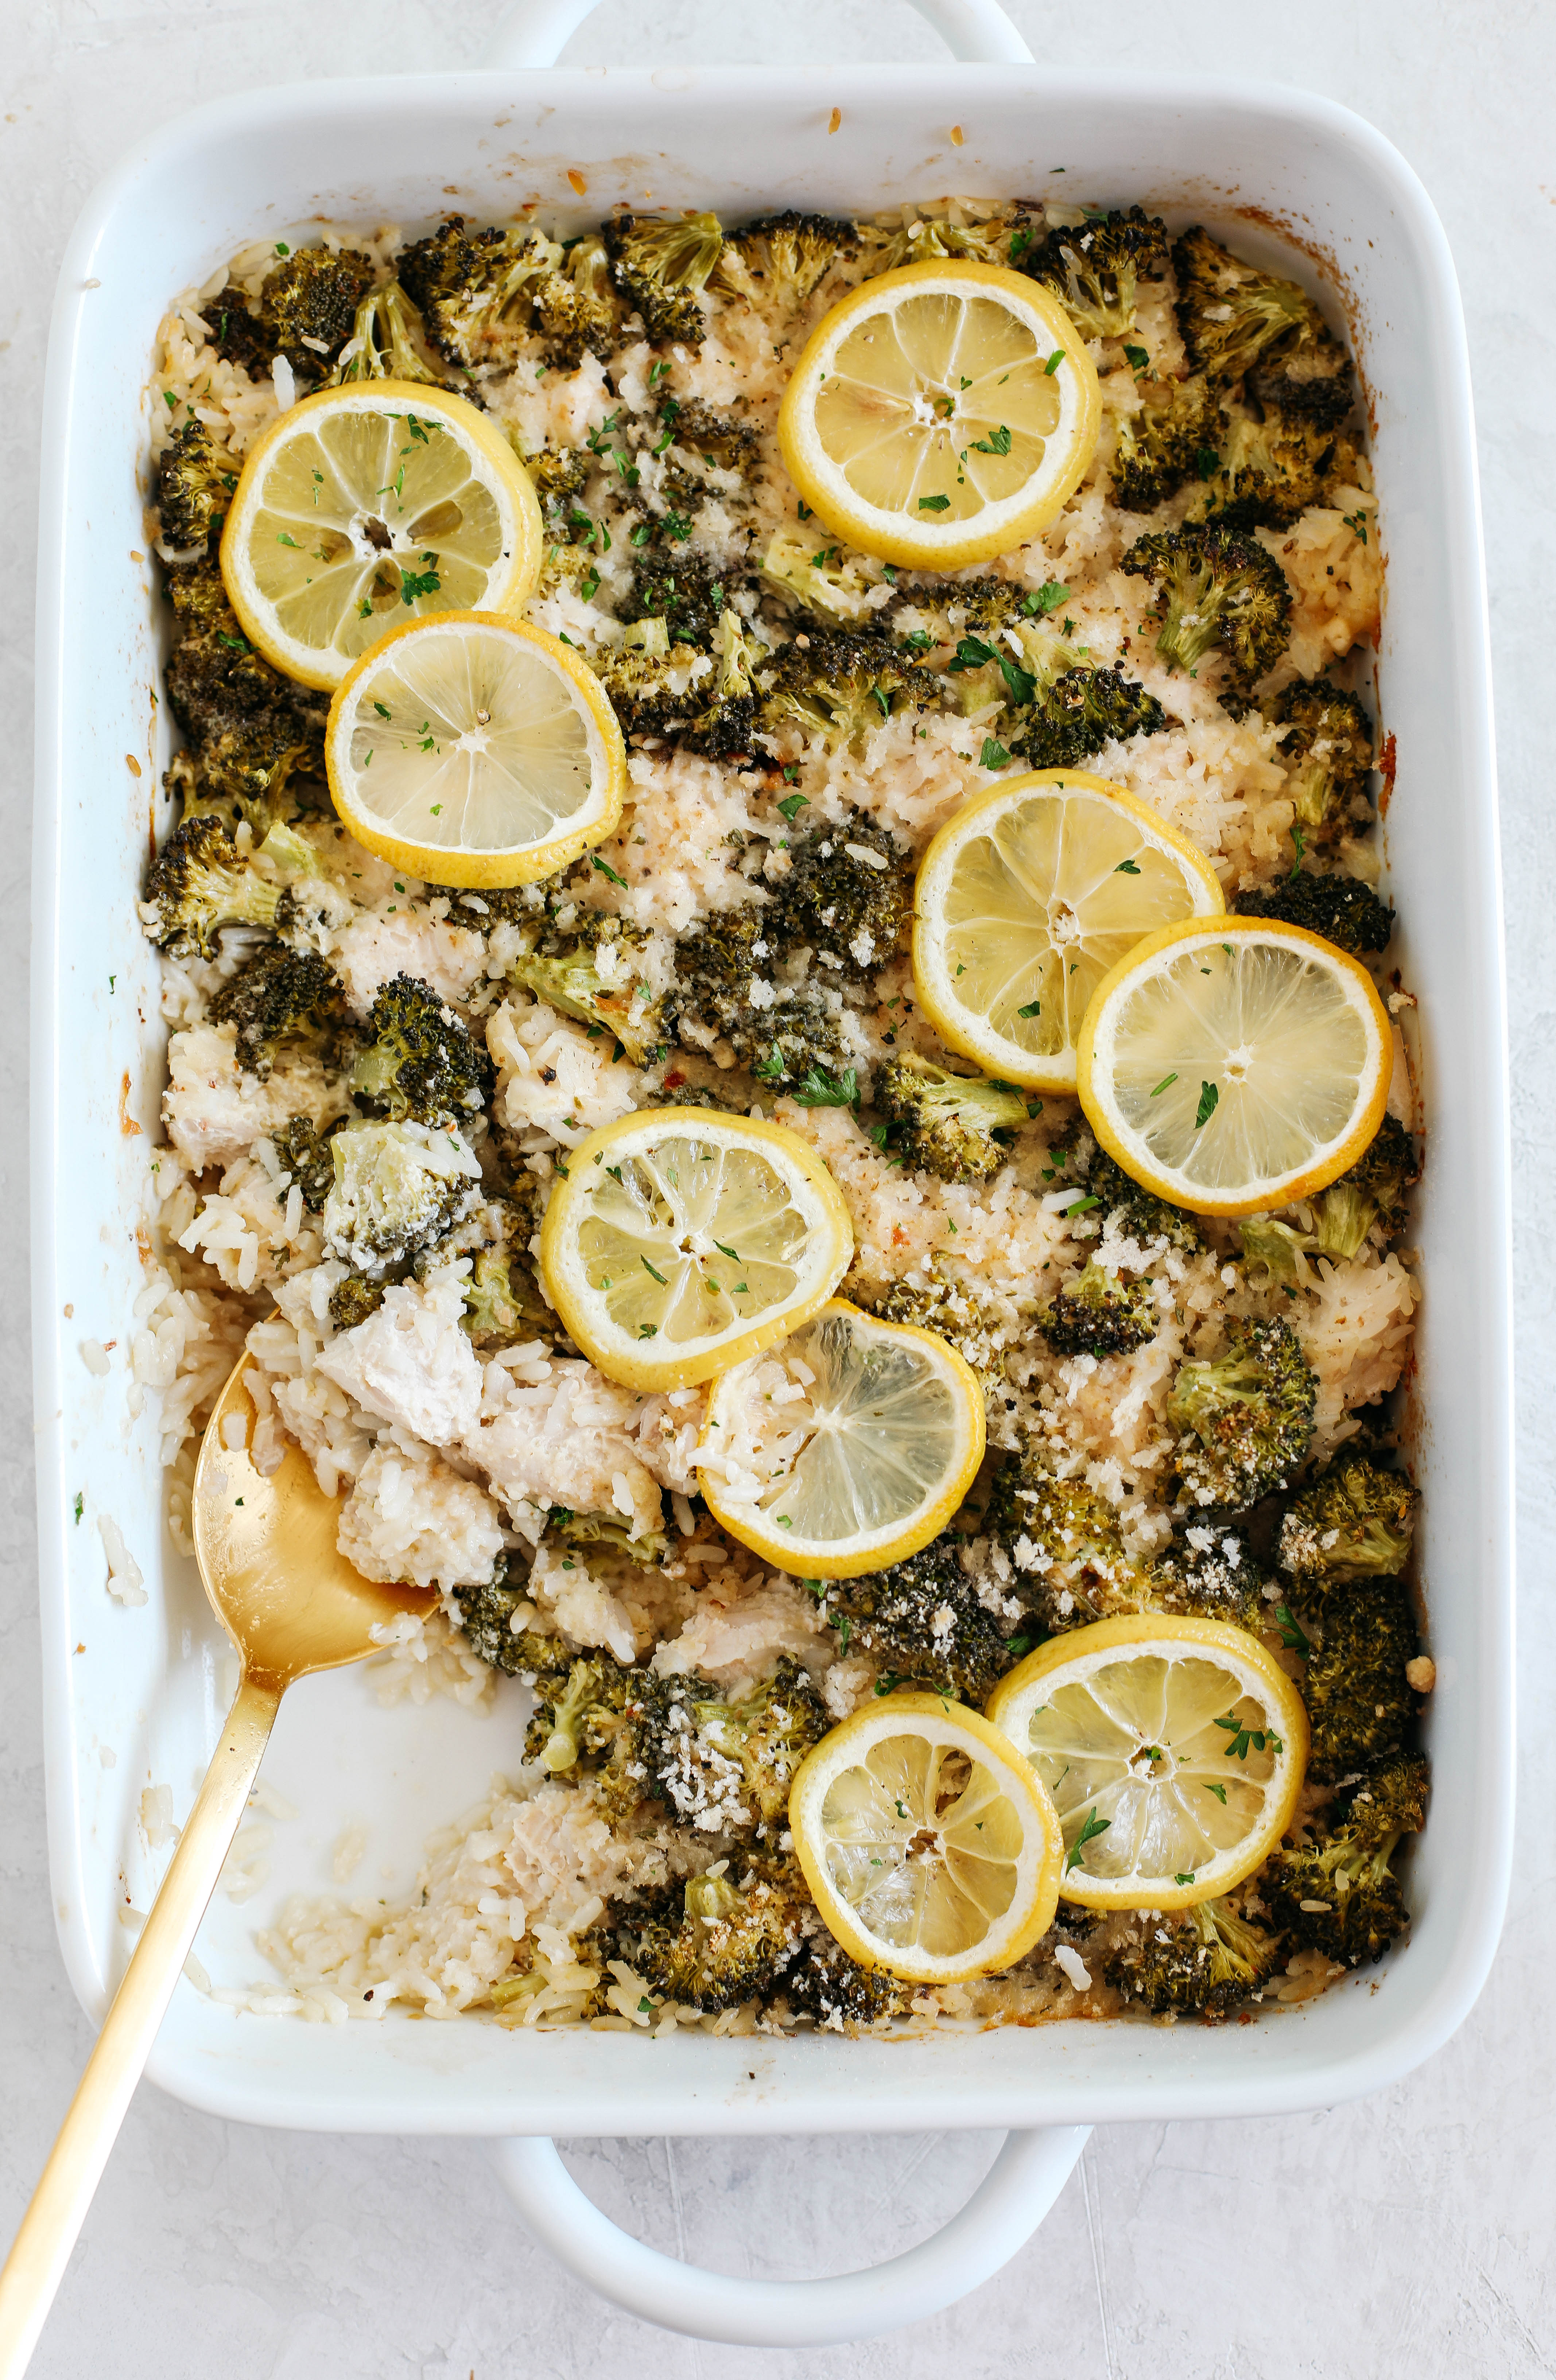 This Creamy Lemon Chicken, Broccoli and Rice Casserole is the perfect weeknight meal that is full of so much flavor and easily made in one dish without pre-cooking anything beforehand!